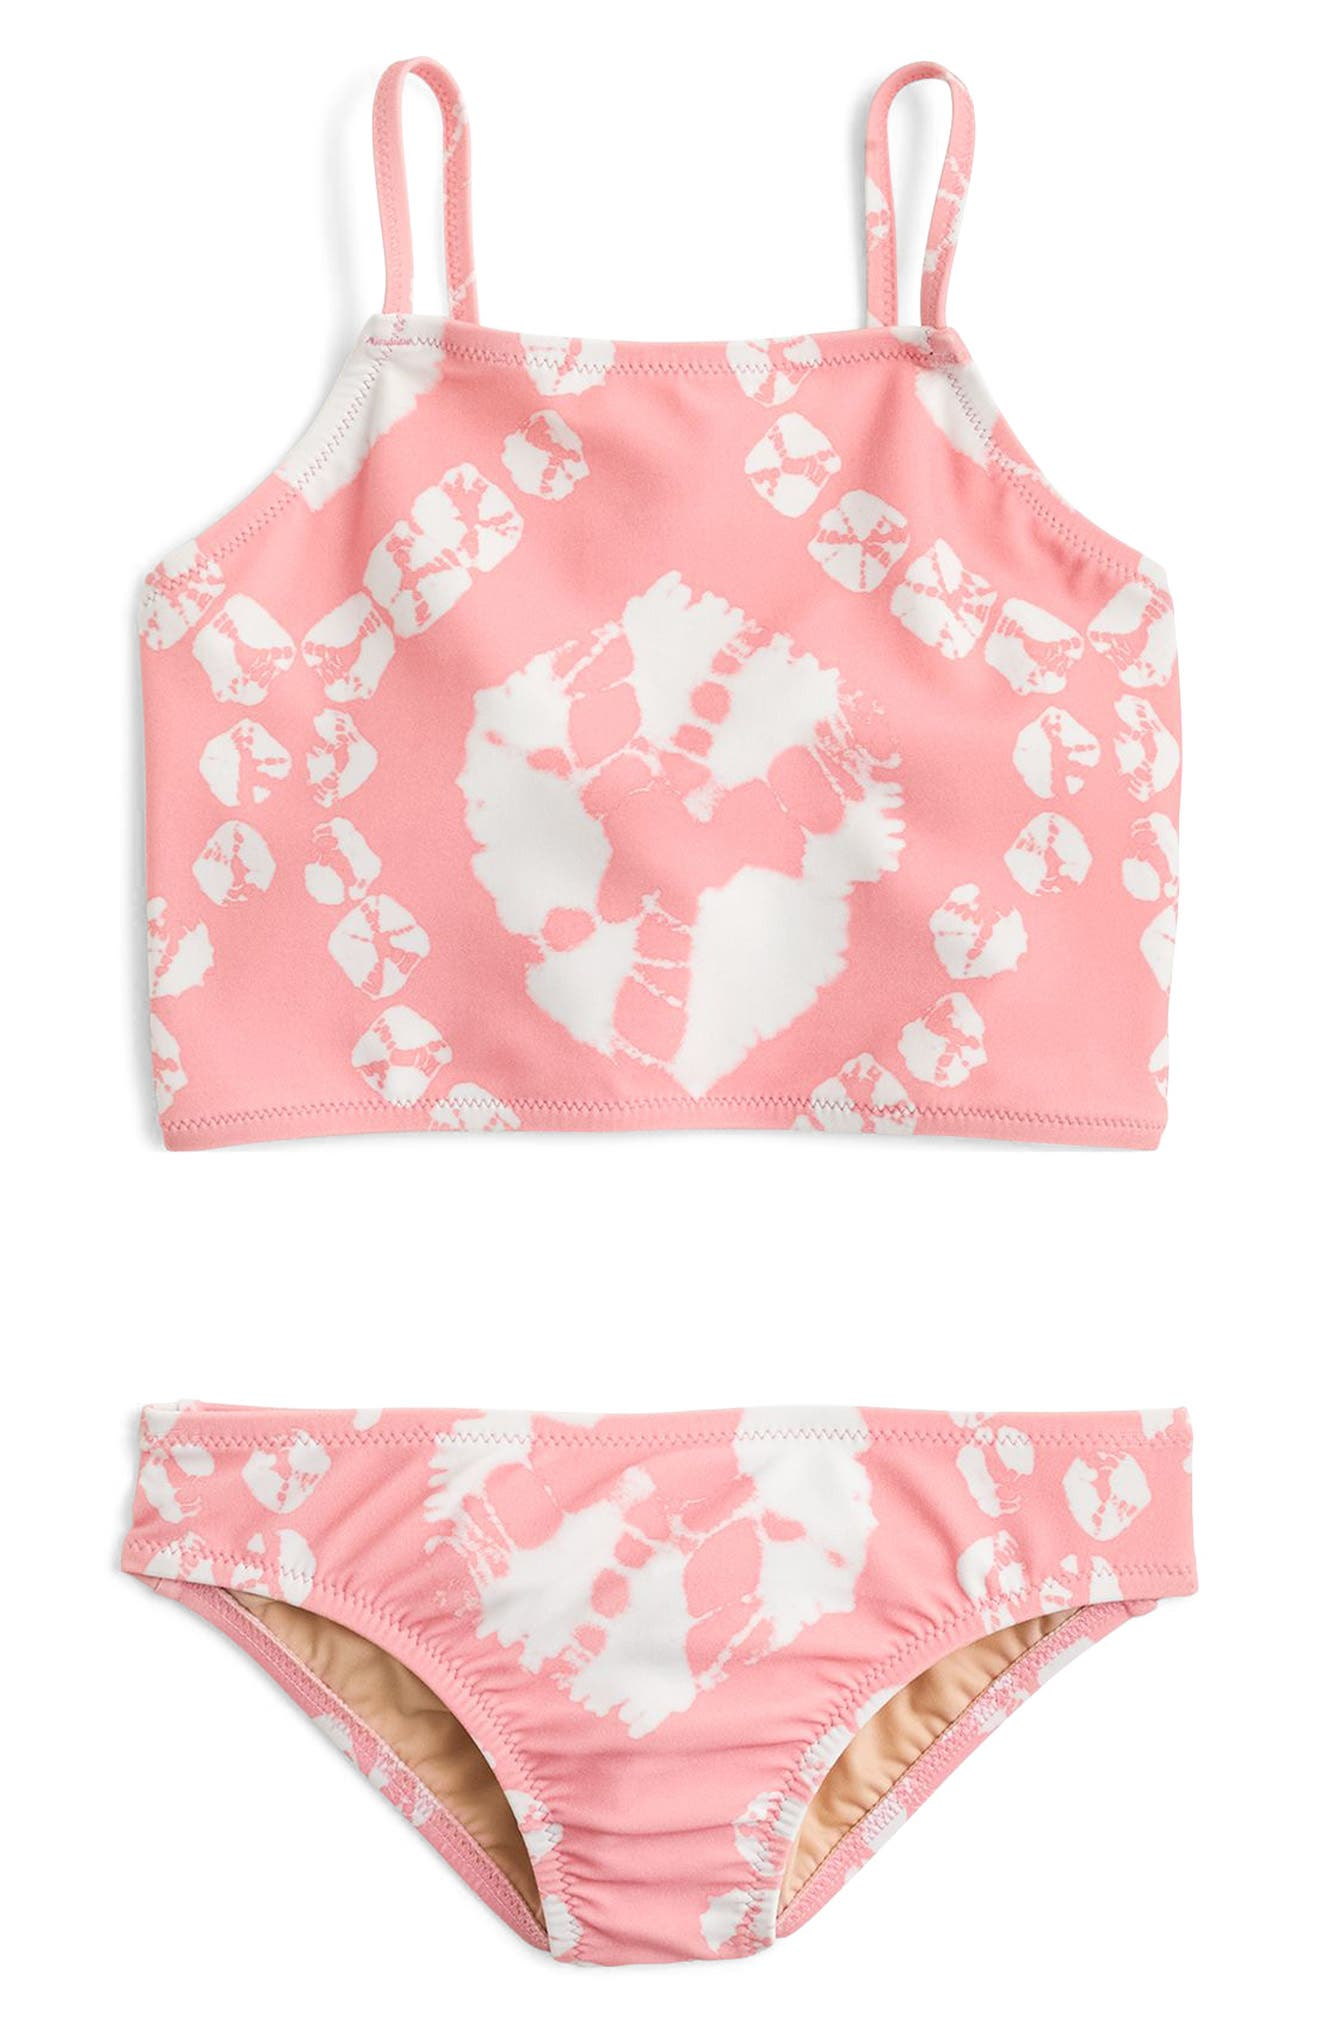 Tie Dye Two-Piece Swimsuit,                             Main thumbnail 1, color,                             Pink Orange Multi